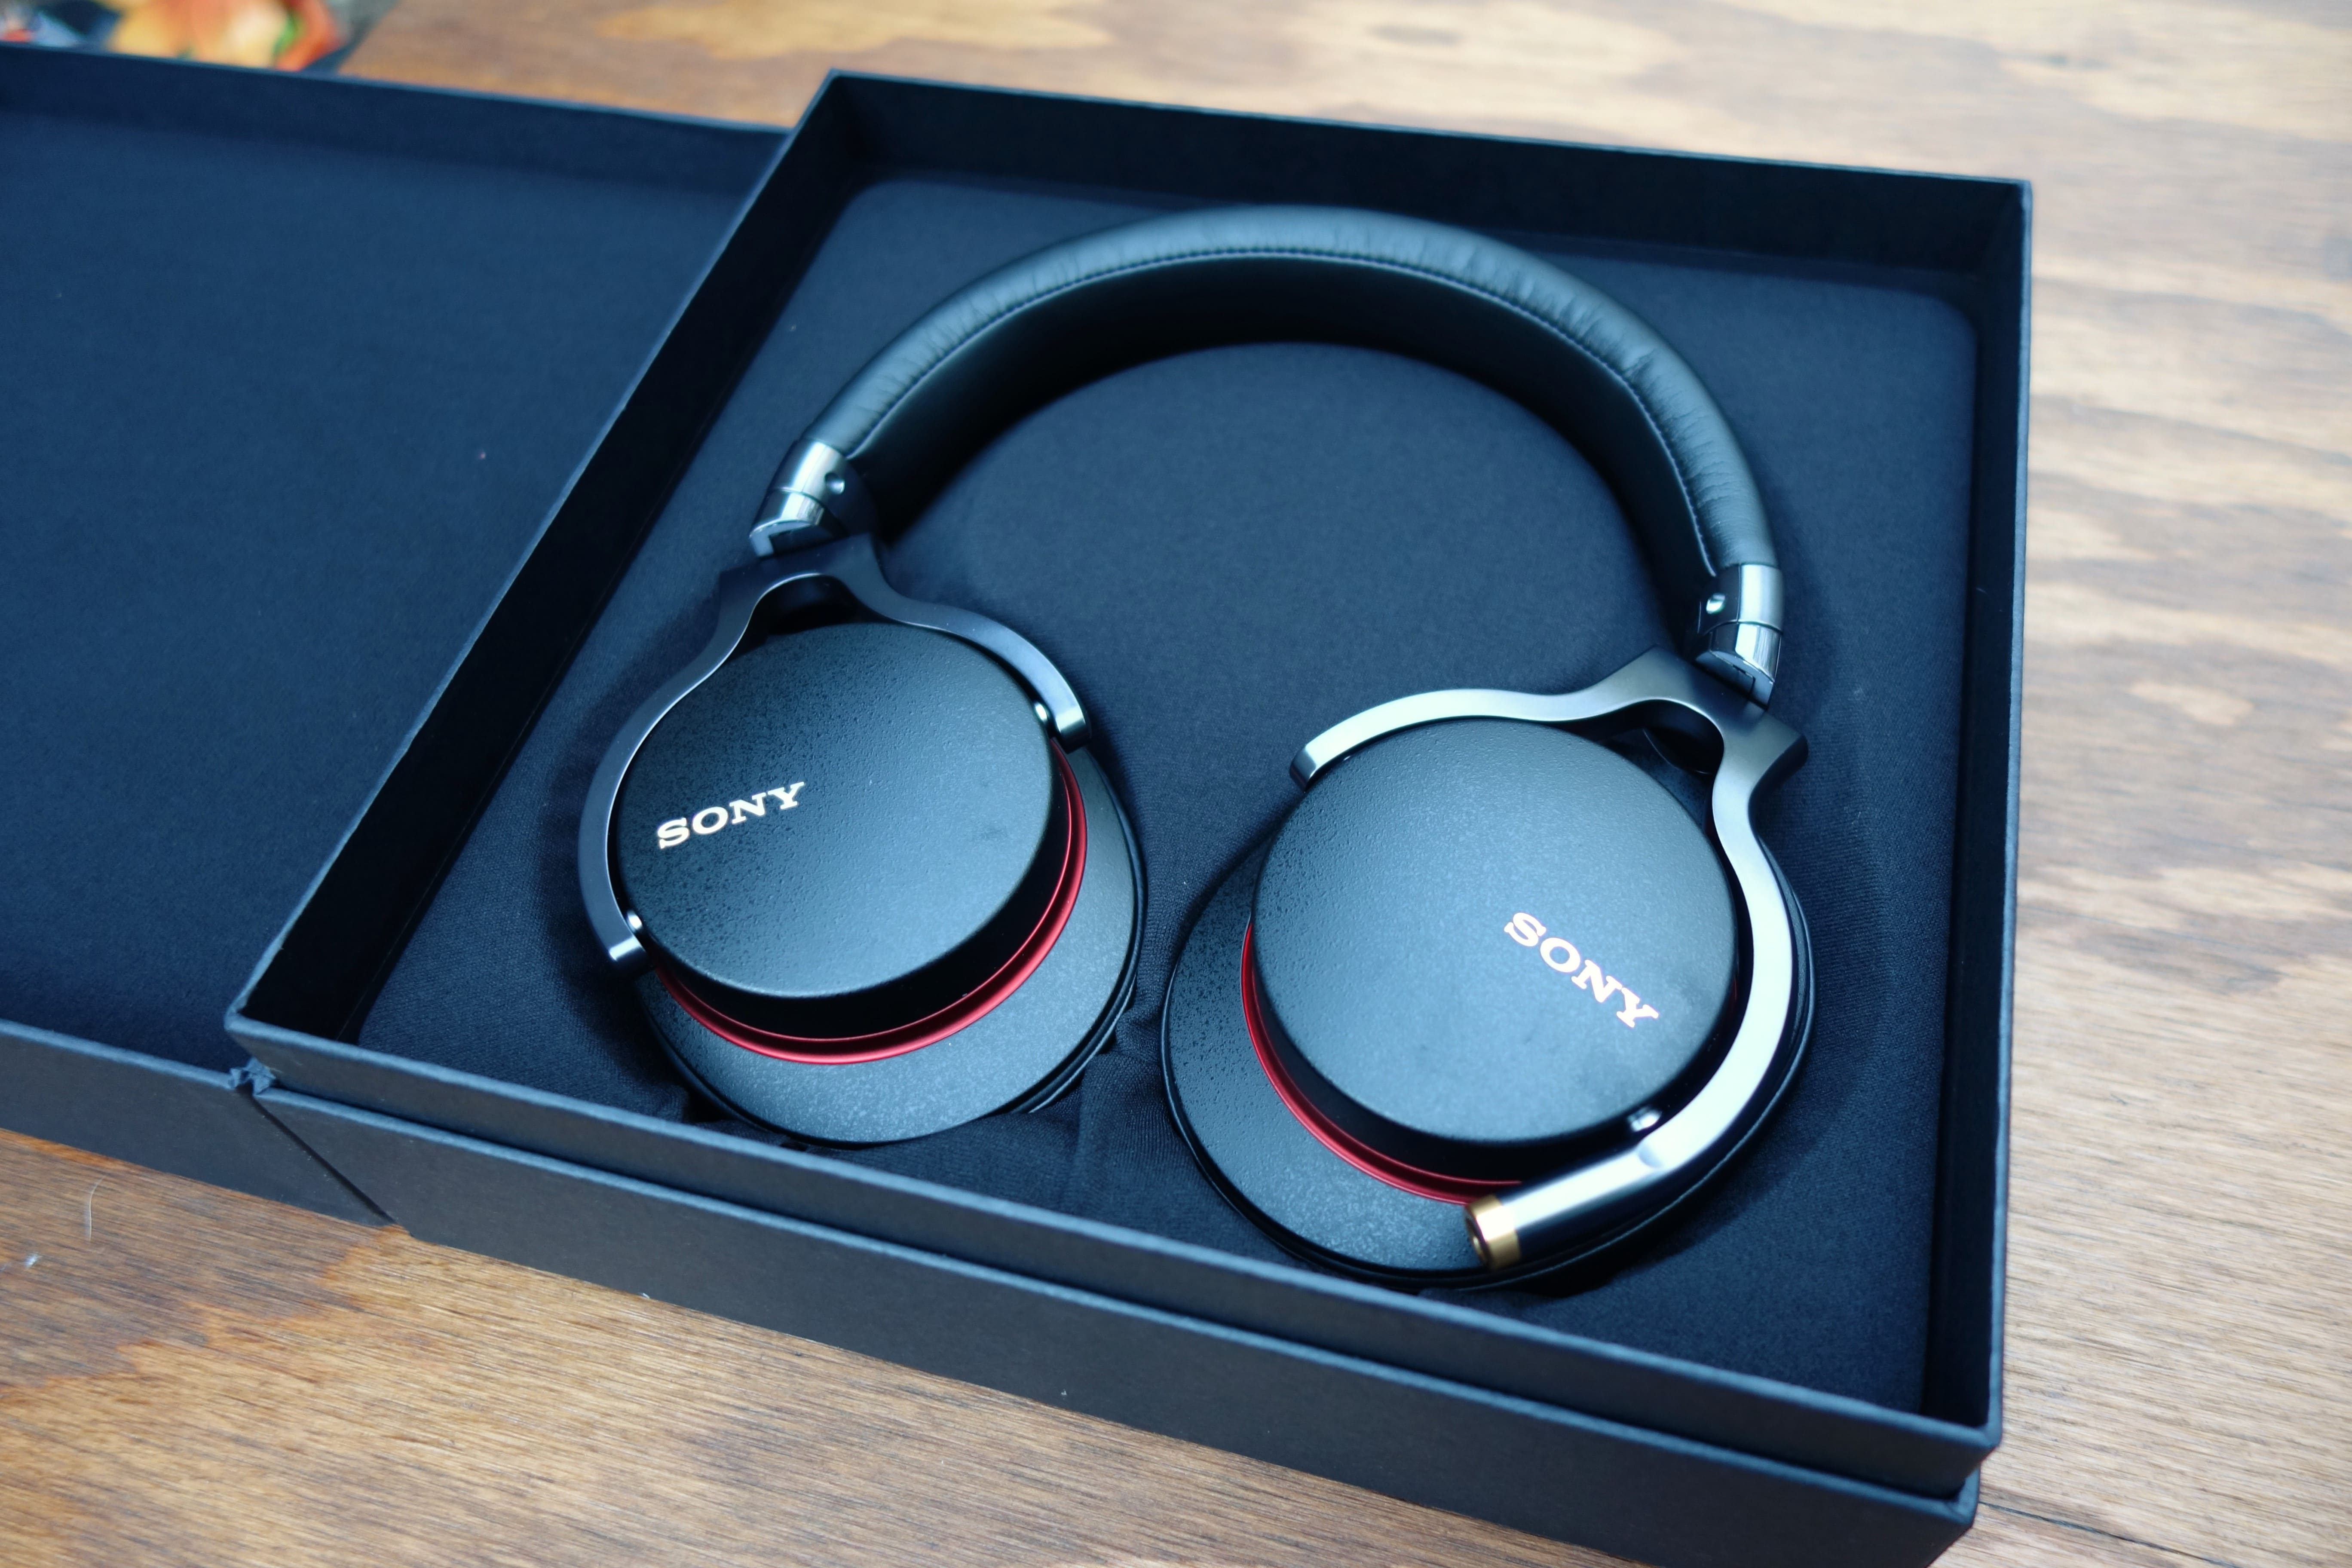 8e80124c089 The MDR-1A can be called Sony's signature over-ear headphone, or the  within-reason premium offering before things go into crazy expensive  audiophile ...